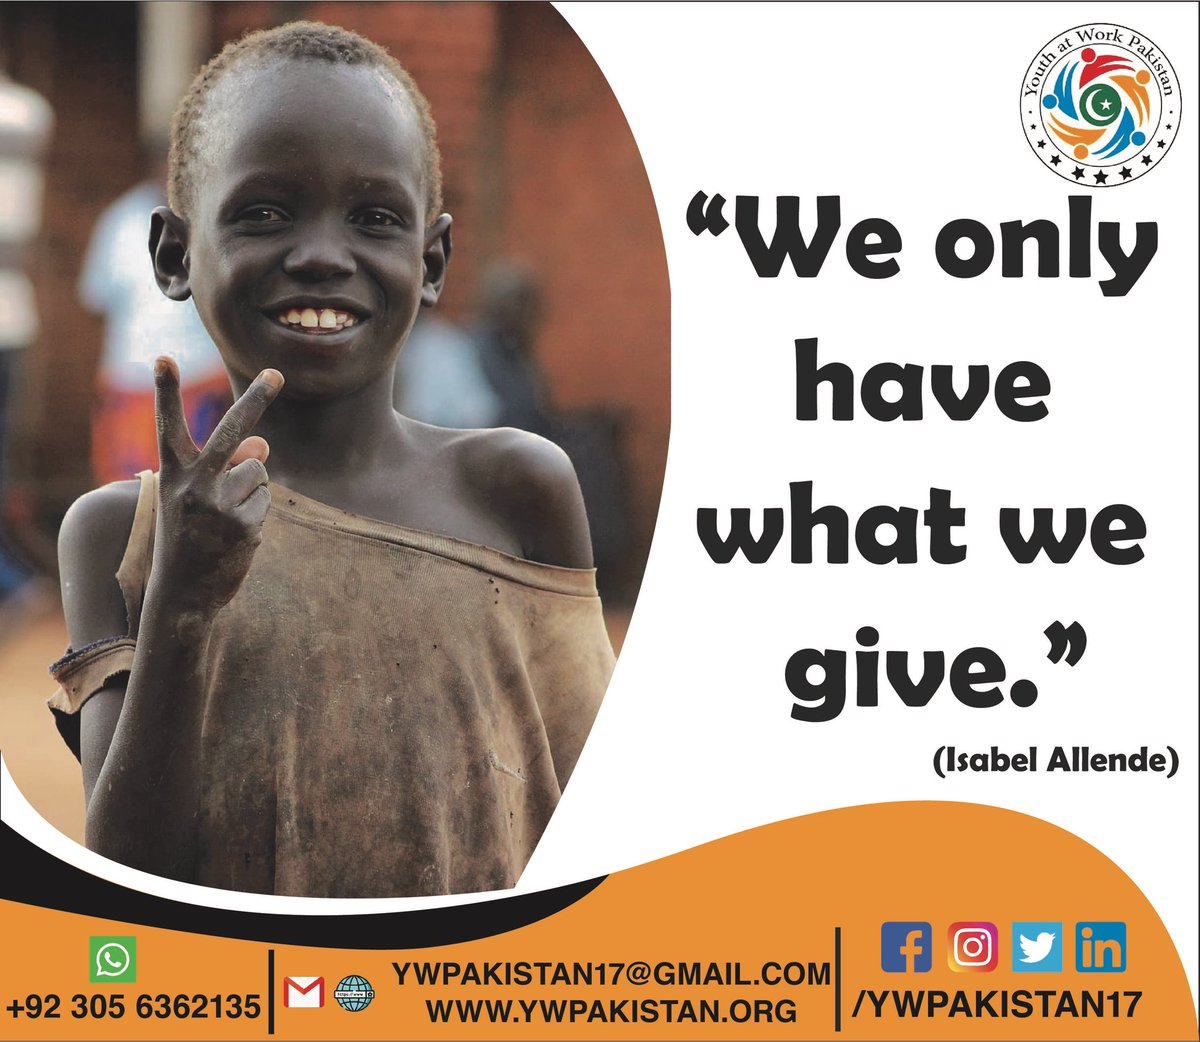 Giving charity is such an important part of Islam. Islam encourages Muslims to help their brothers and sisters, in the form of zakaat or even sadaqah. In these times of hardship, let us come together as a community and offer what we can.  Regards : Team YWP #charity #lslam #youth pic.twitter.com/xS3wrmstdr